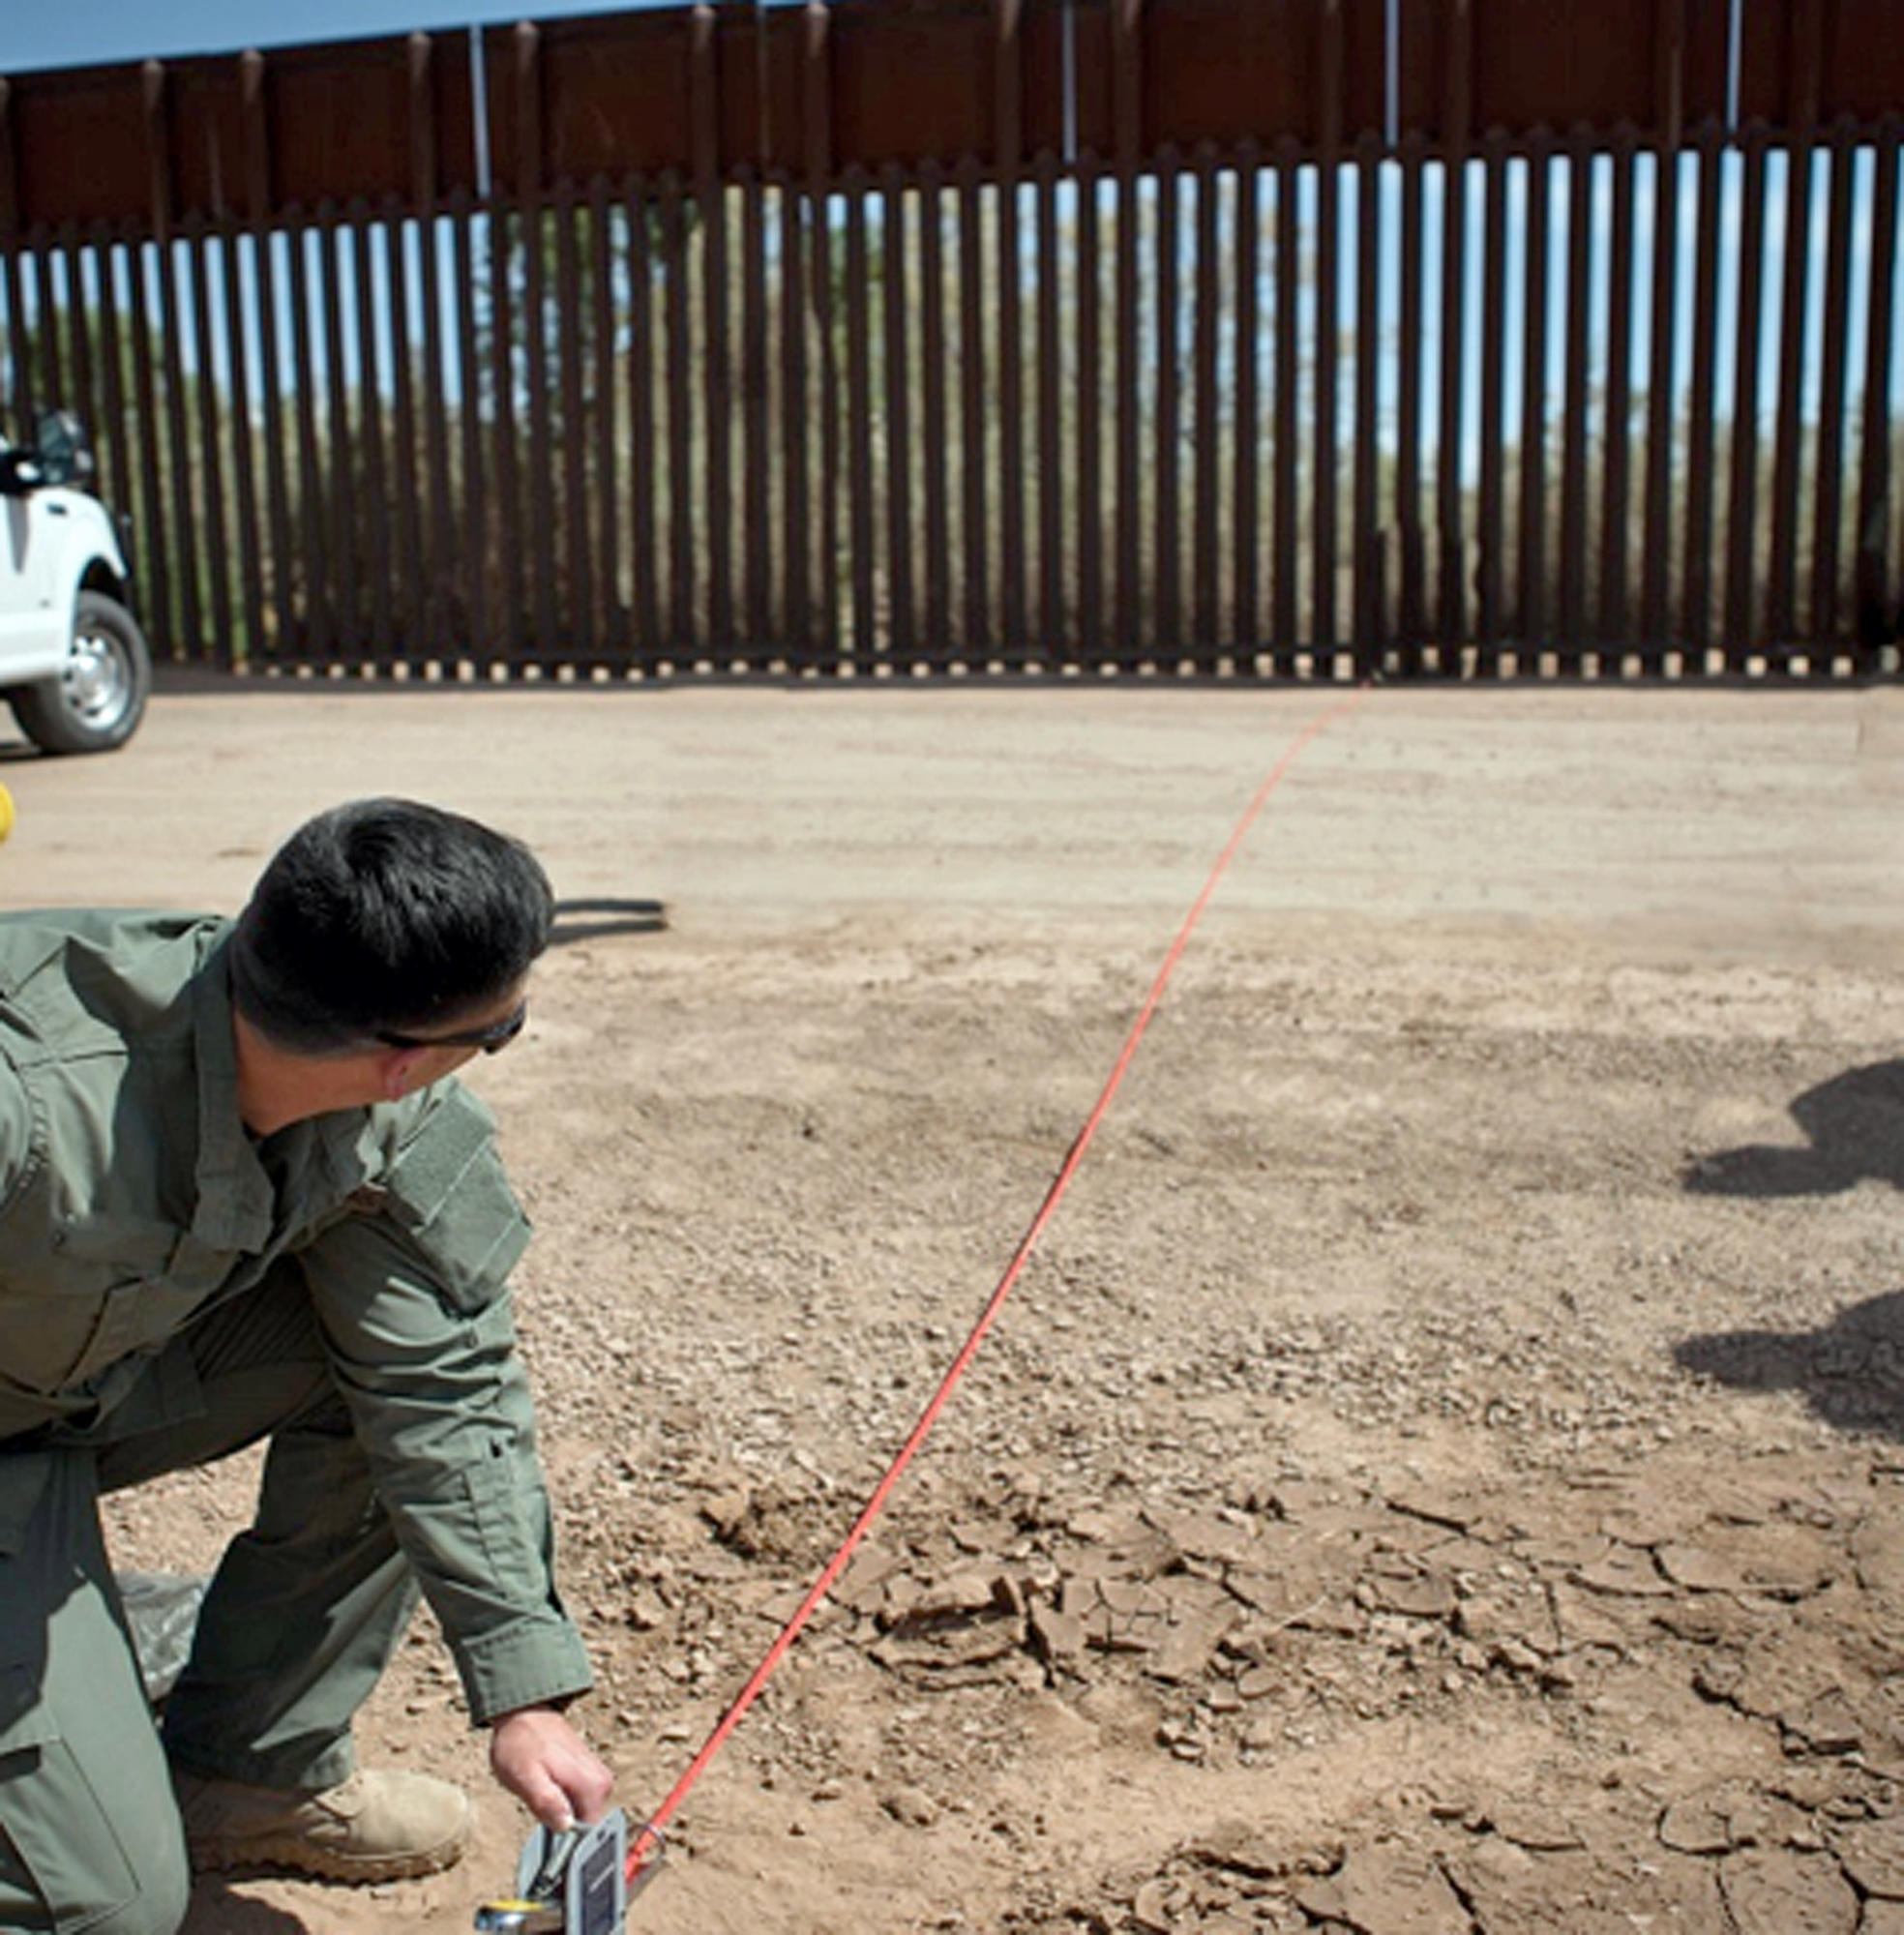 A Border Patrol agent shows the path of a tunnel that crosses the U.S.-Mexico border near Calexico. The passage extends about 60 feet into Mexico and at least 80 feet into the United States.